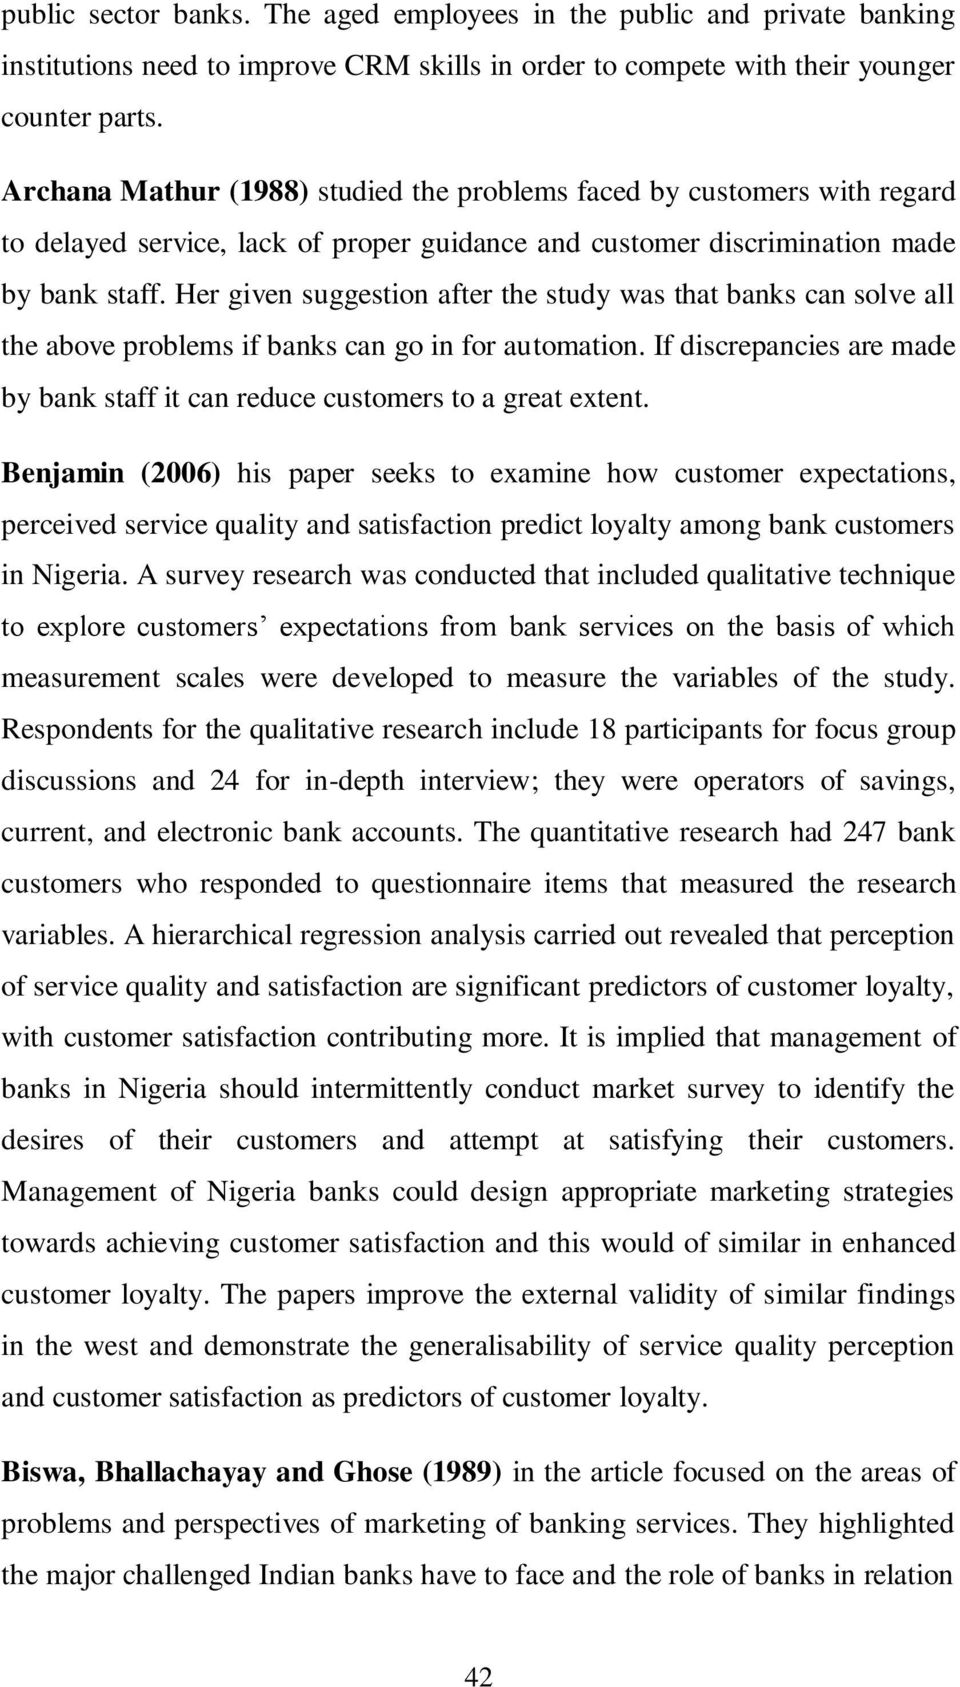 CHAPTER- II THEORETICAL BACKGROUND TO CRM REVIEW OF